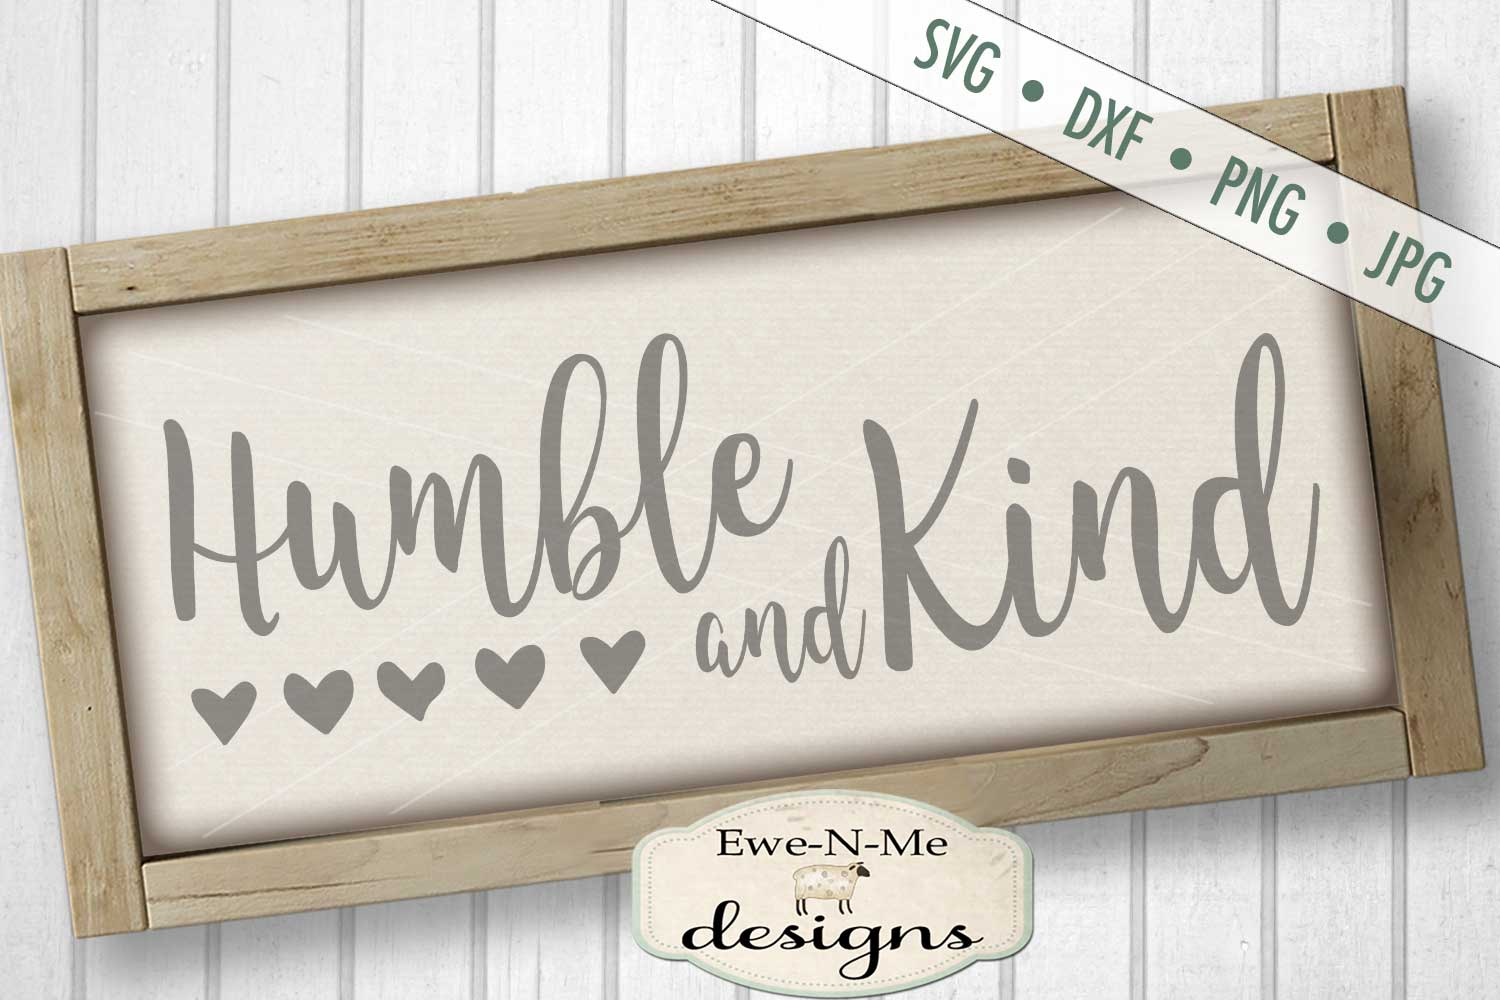 Humble and Kind - Hearts - SVG DXF Files example image 1